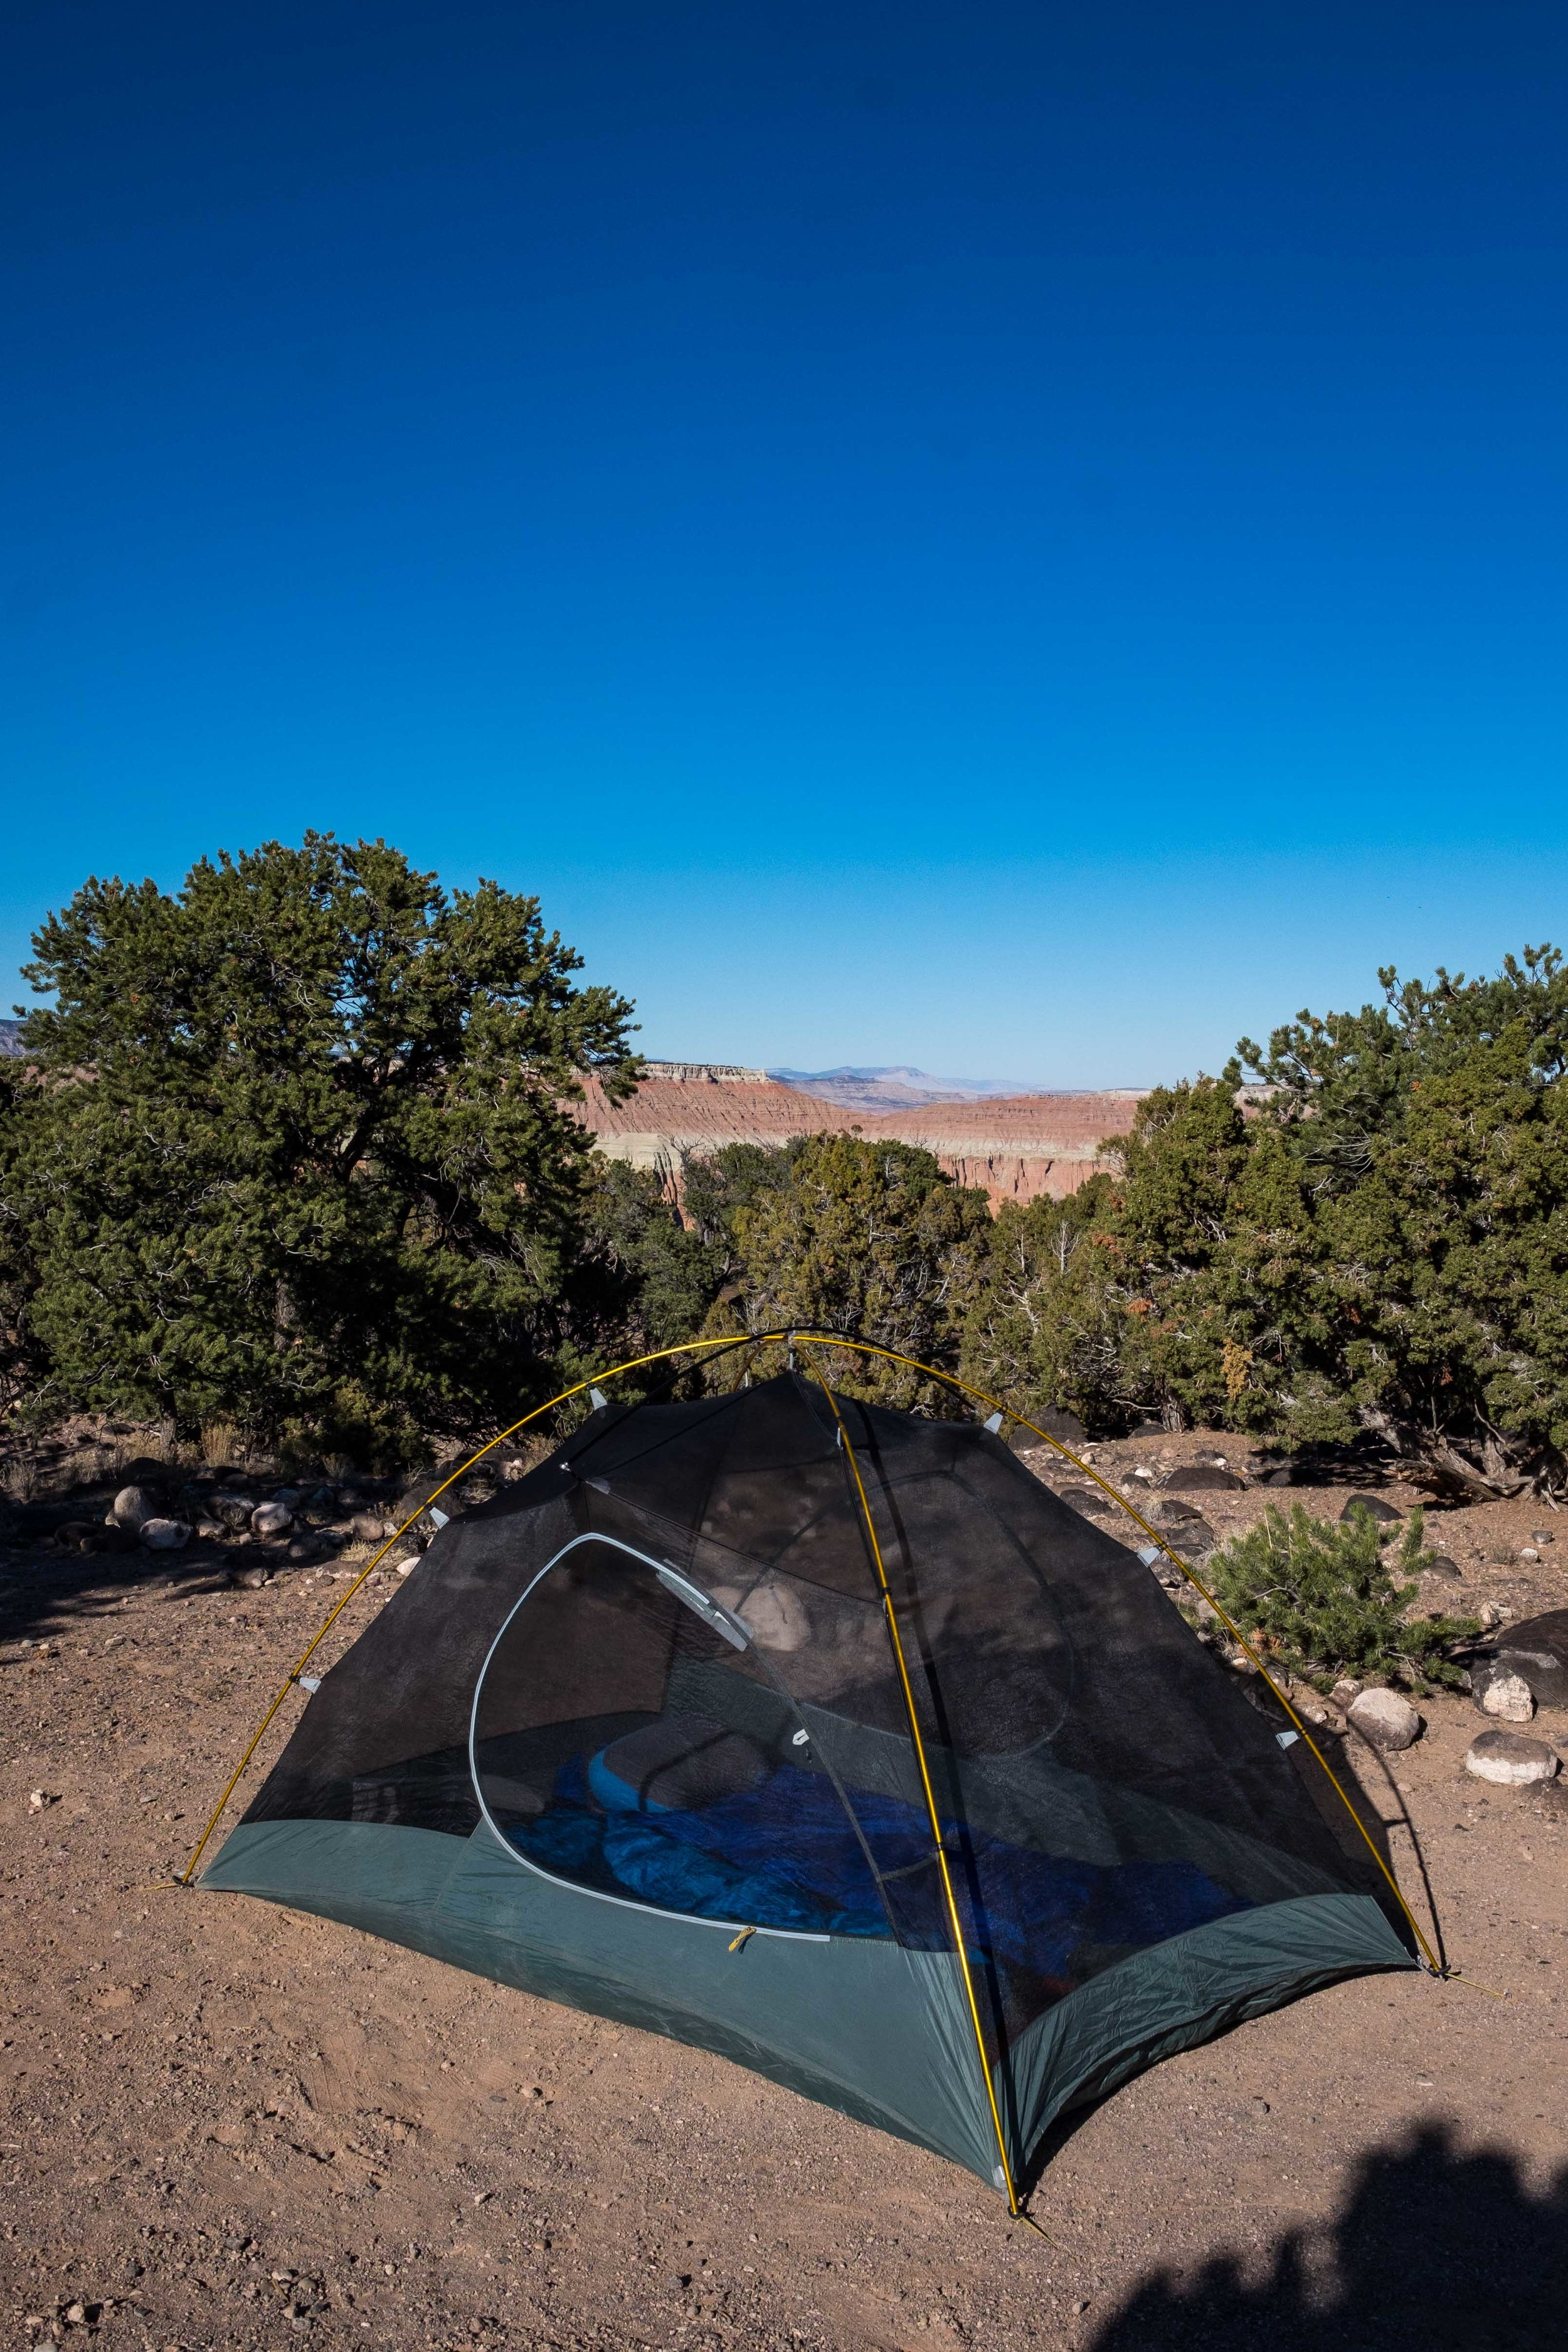 We camped at the primitive Cathedral Valley Campground -- only one other group there, far off, we felt like we had the place to ourselves.